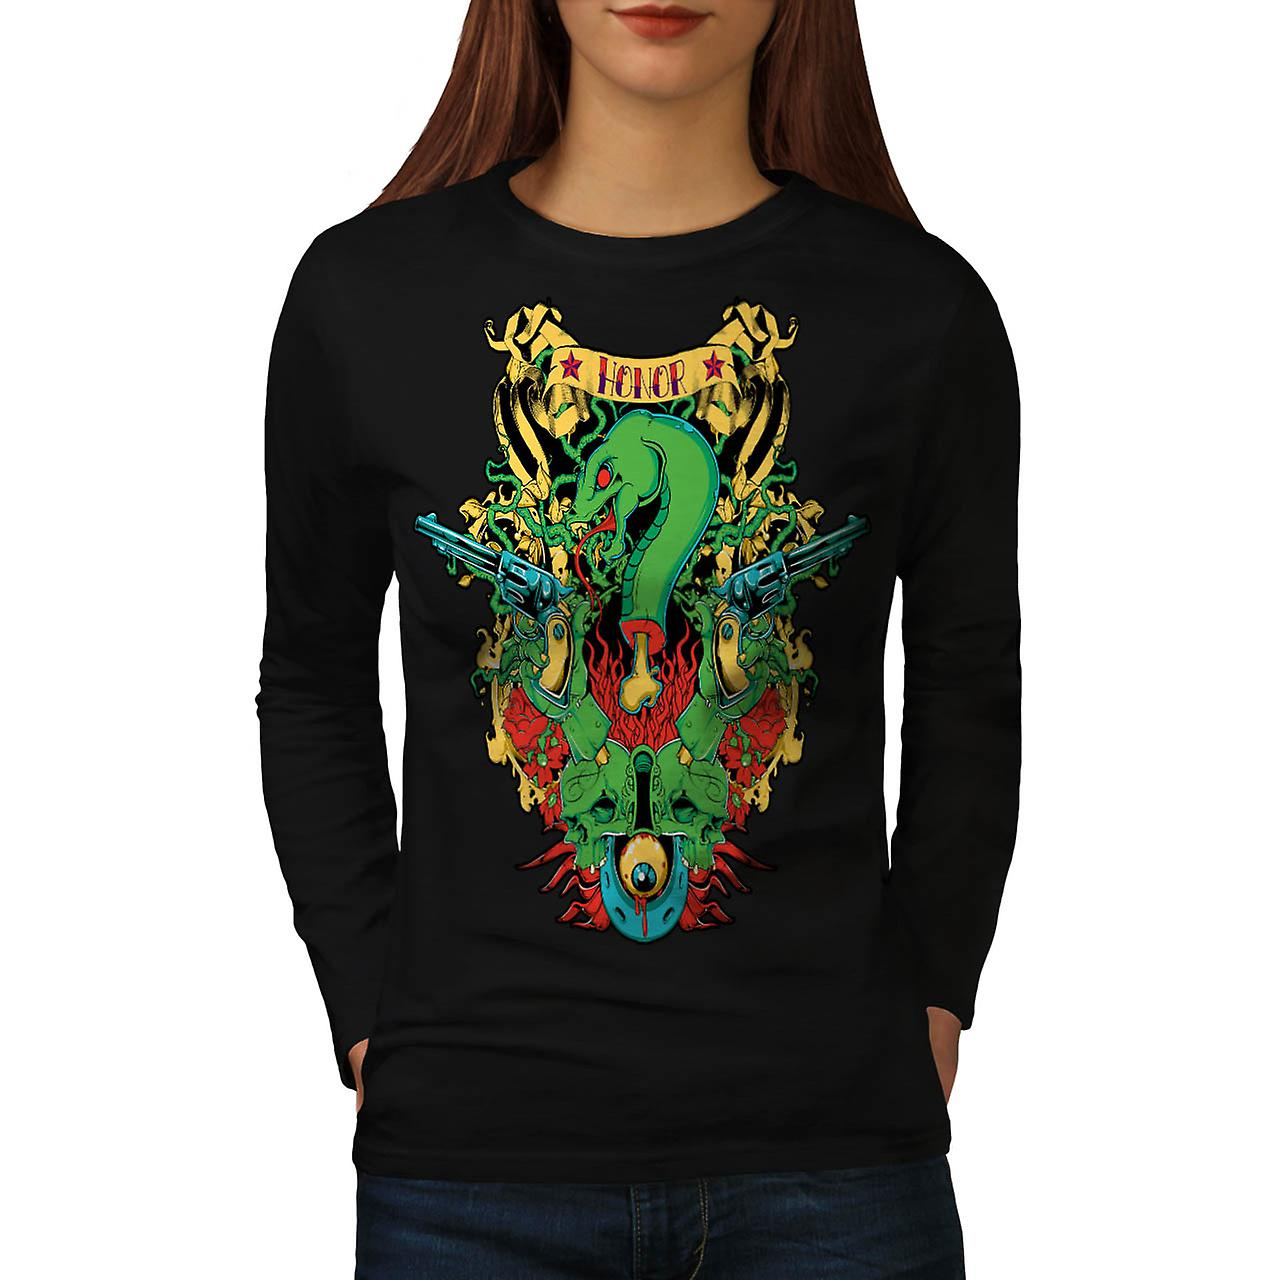 Dragon morte onore serpente mito donna Black t-shirt manica lunga | Wellcoda